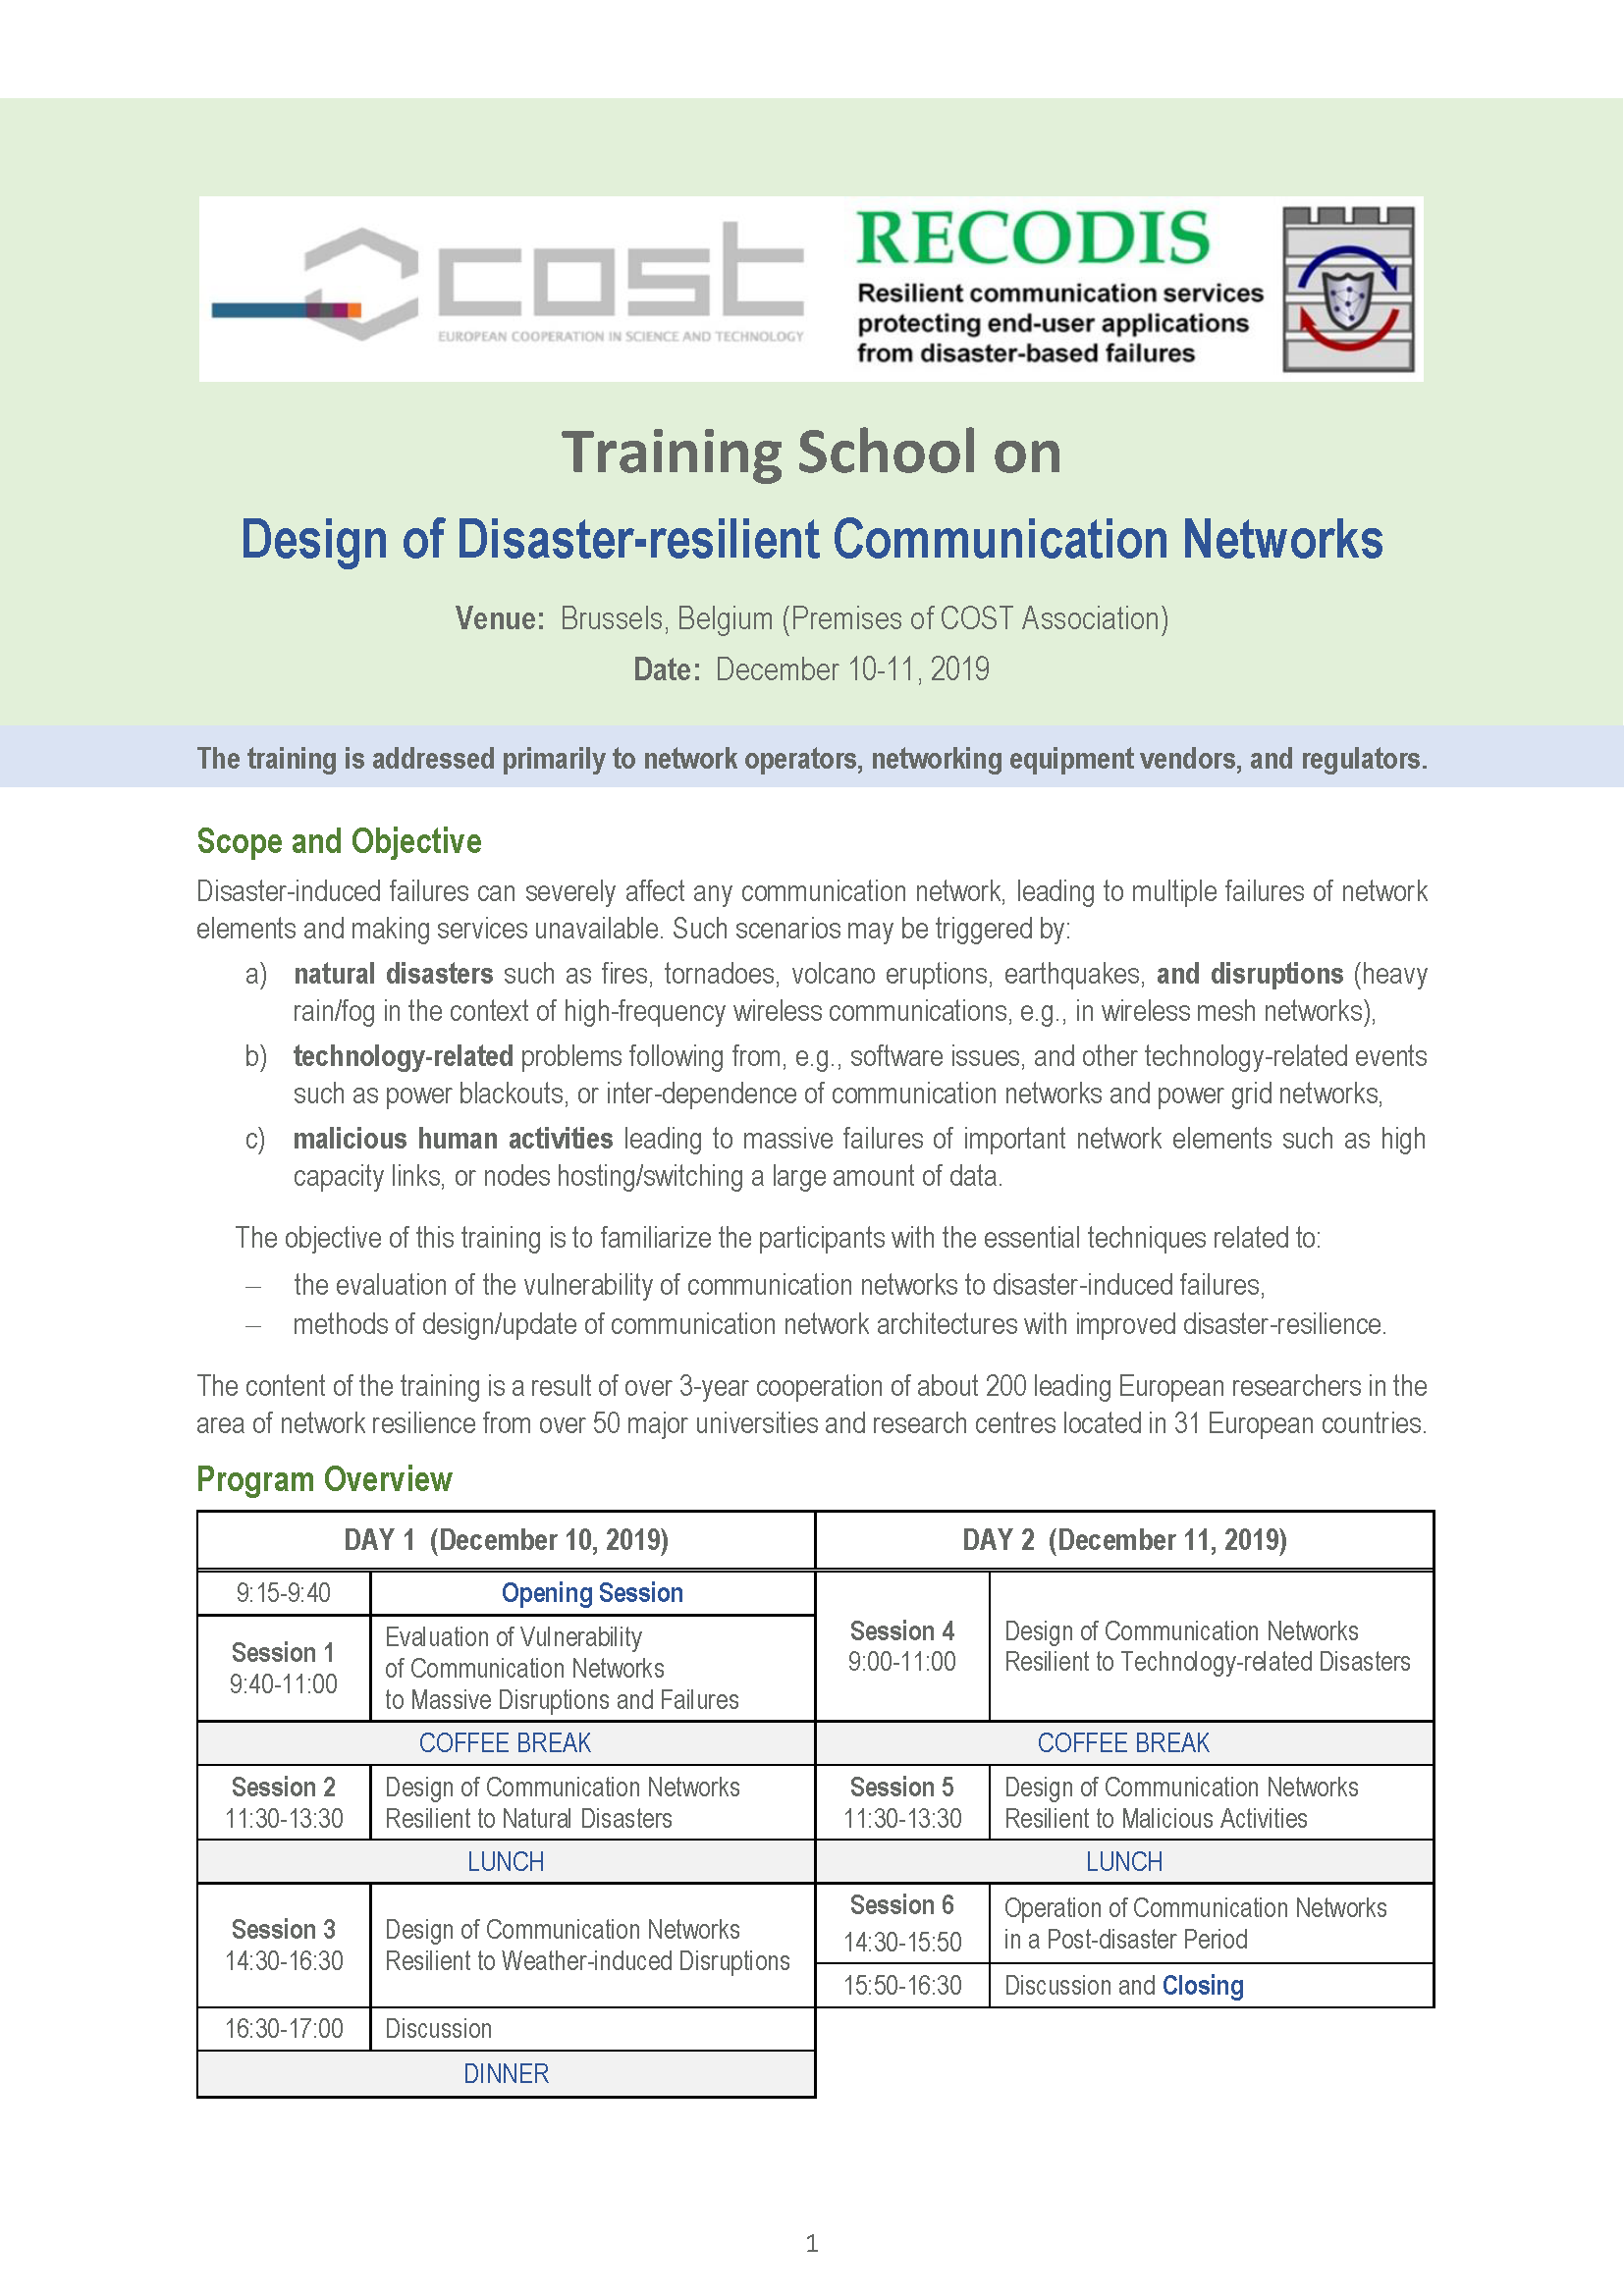 RECODIS Training on Design of Disaster resilient Communication Networks